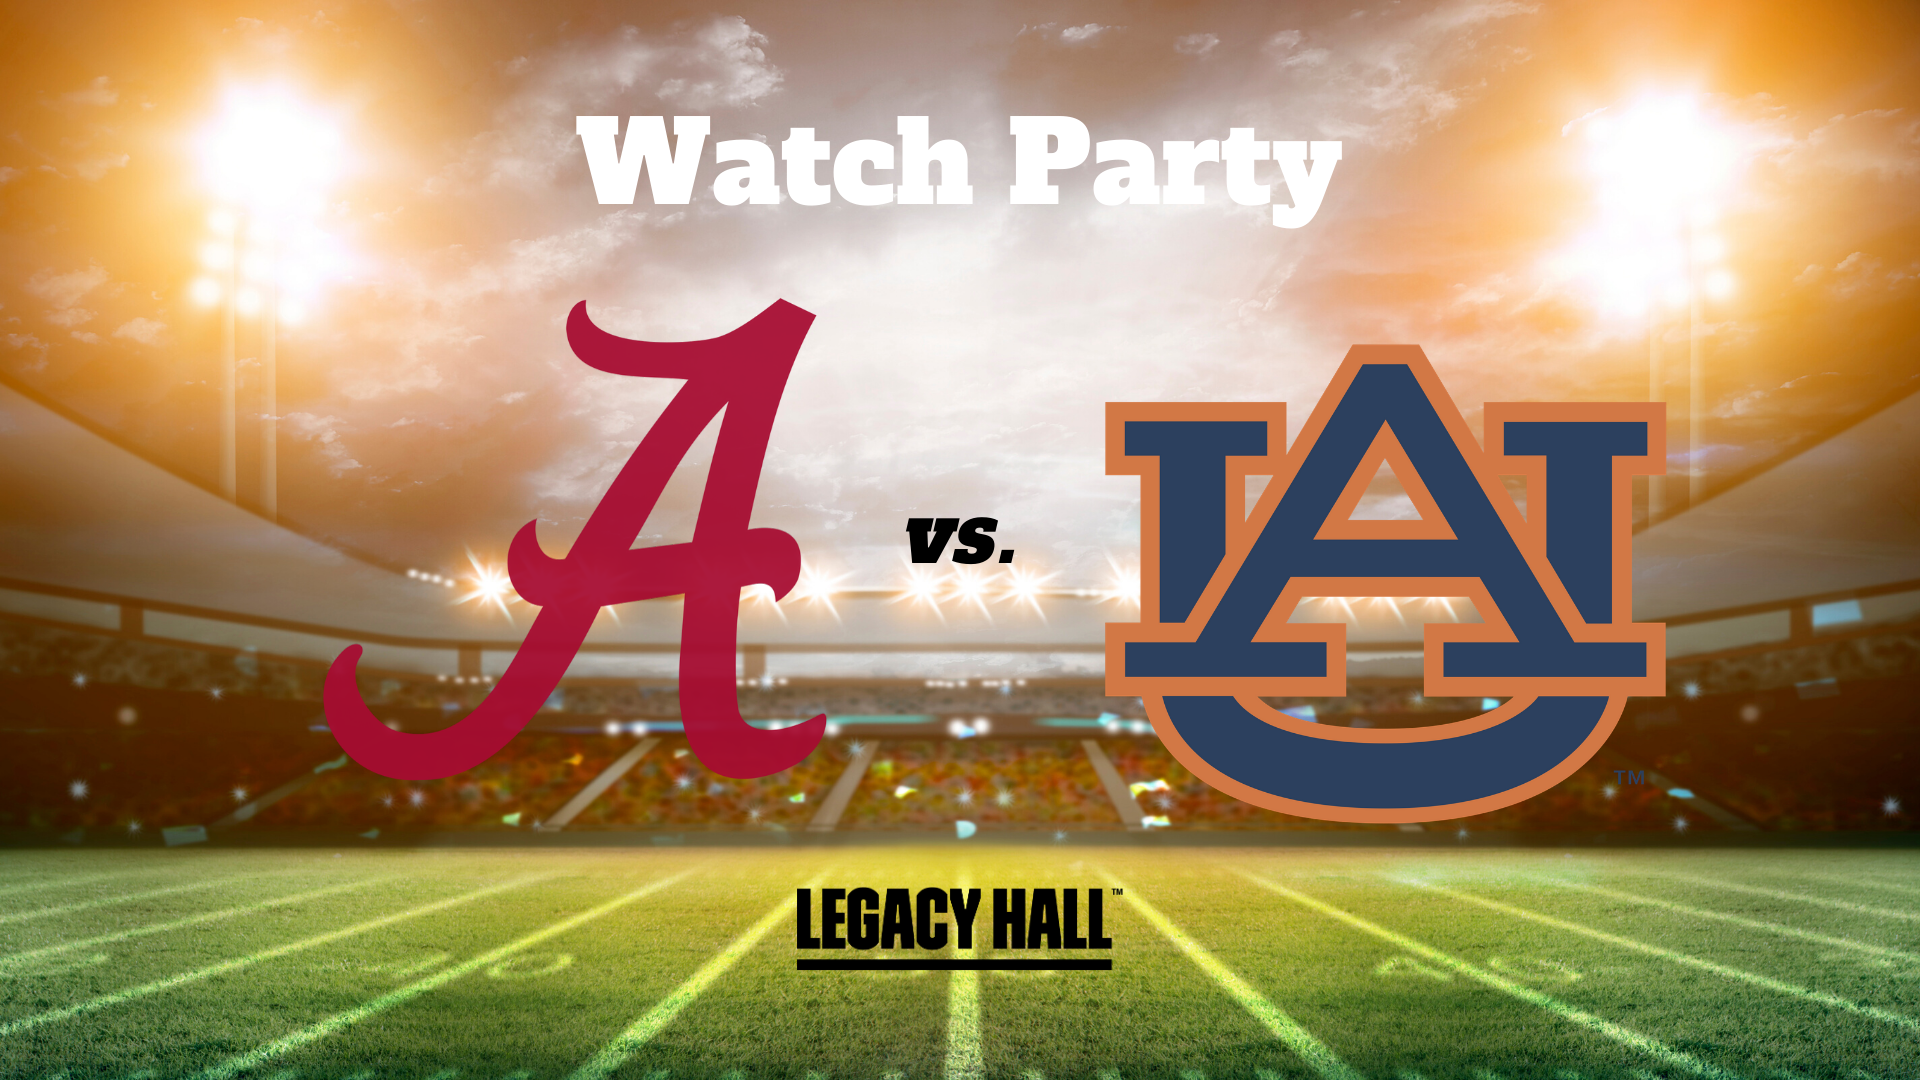 Alabama vs Auburn Watch Party - hero